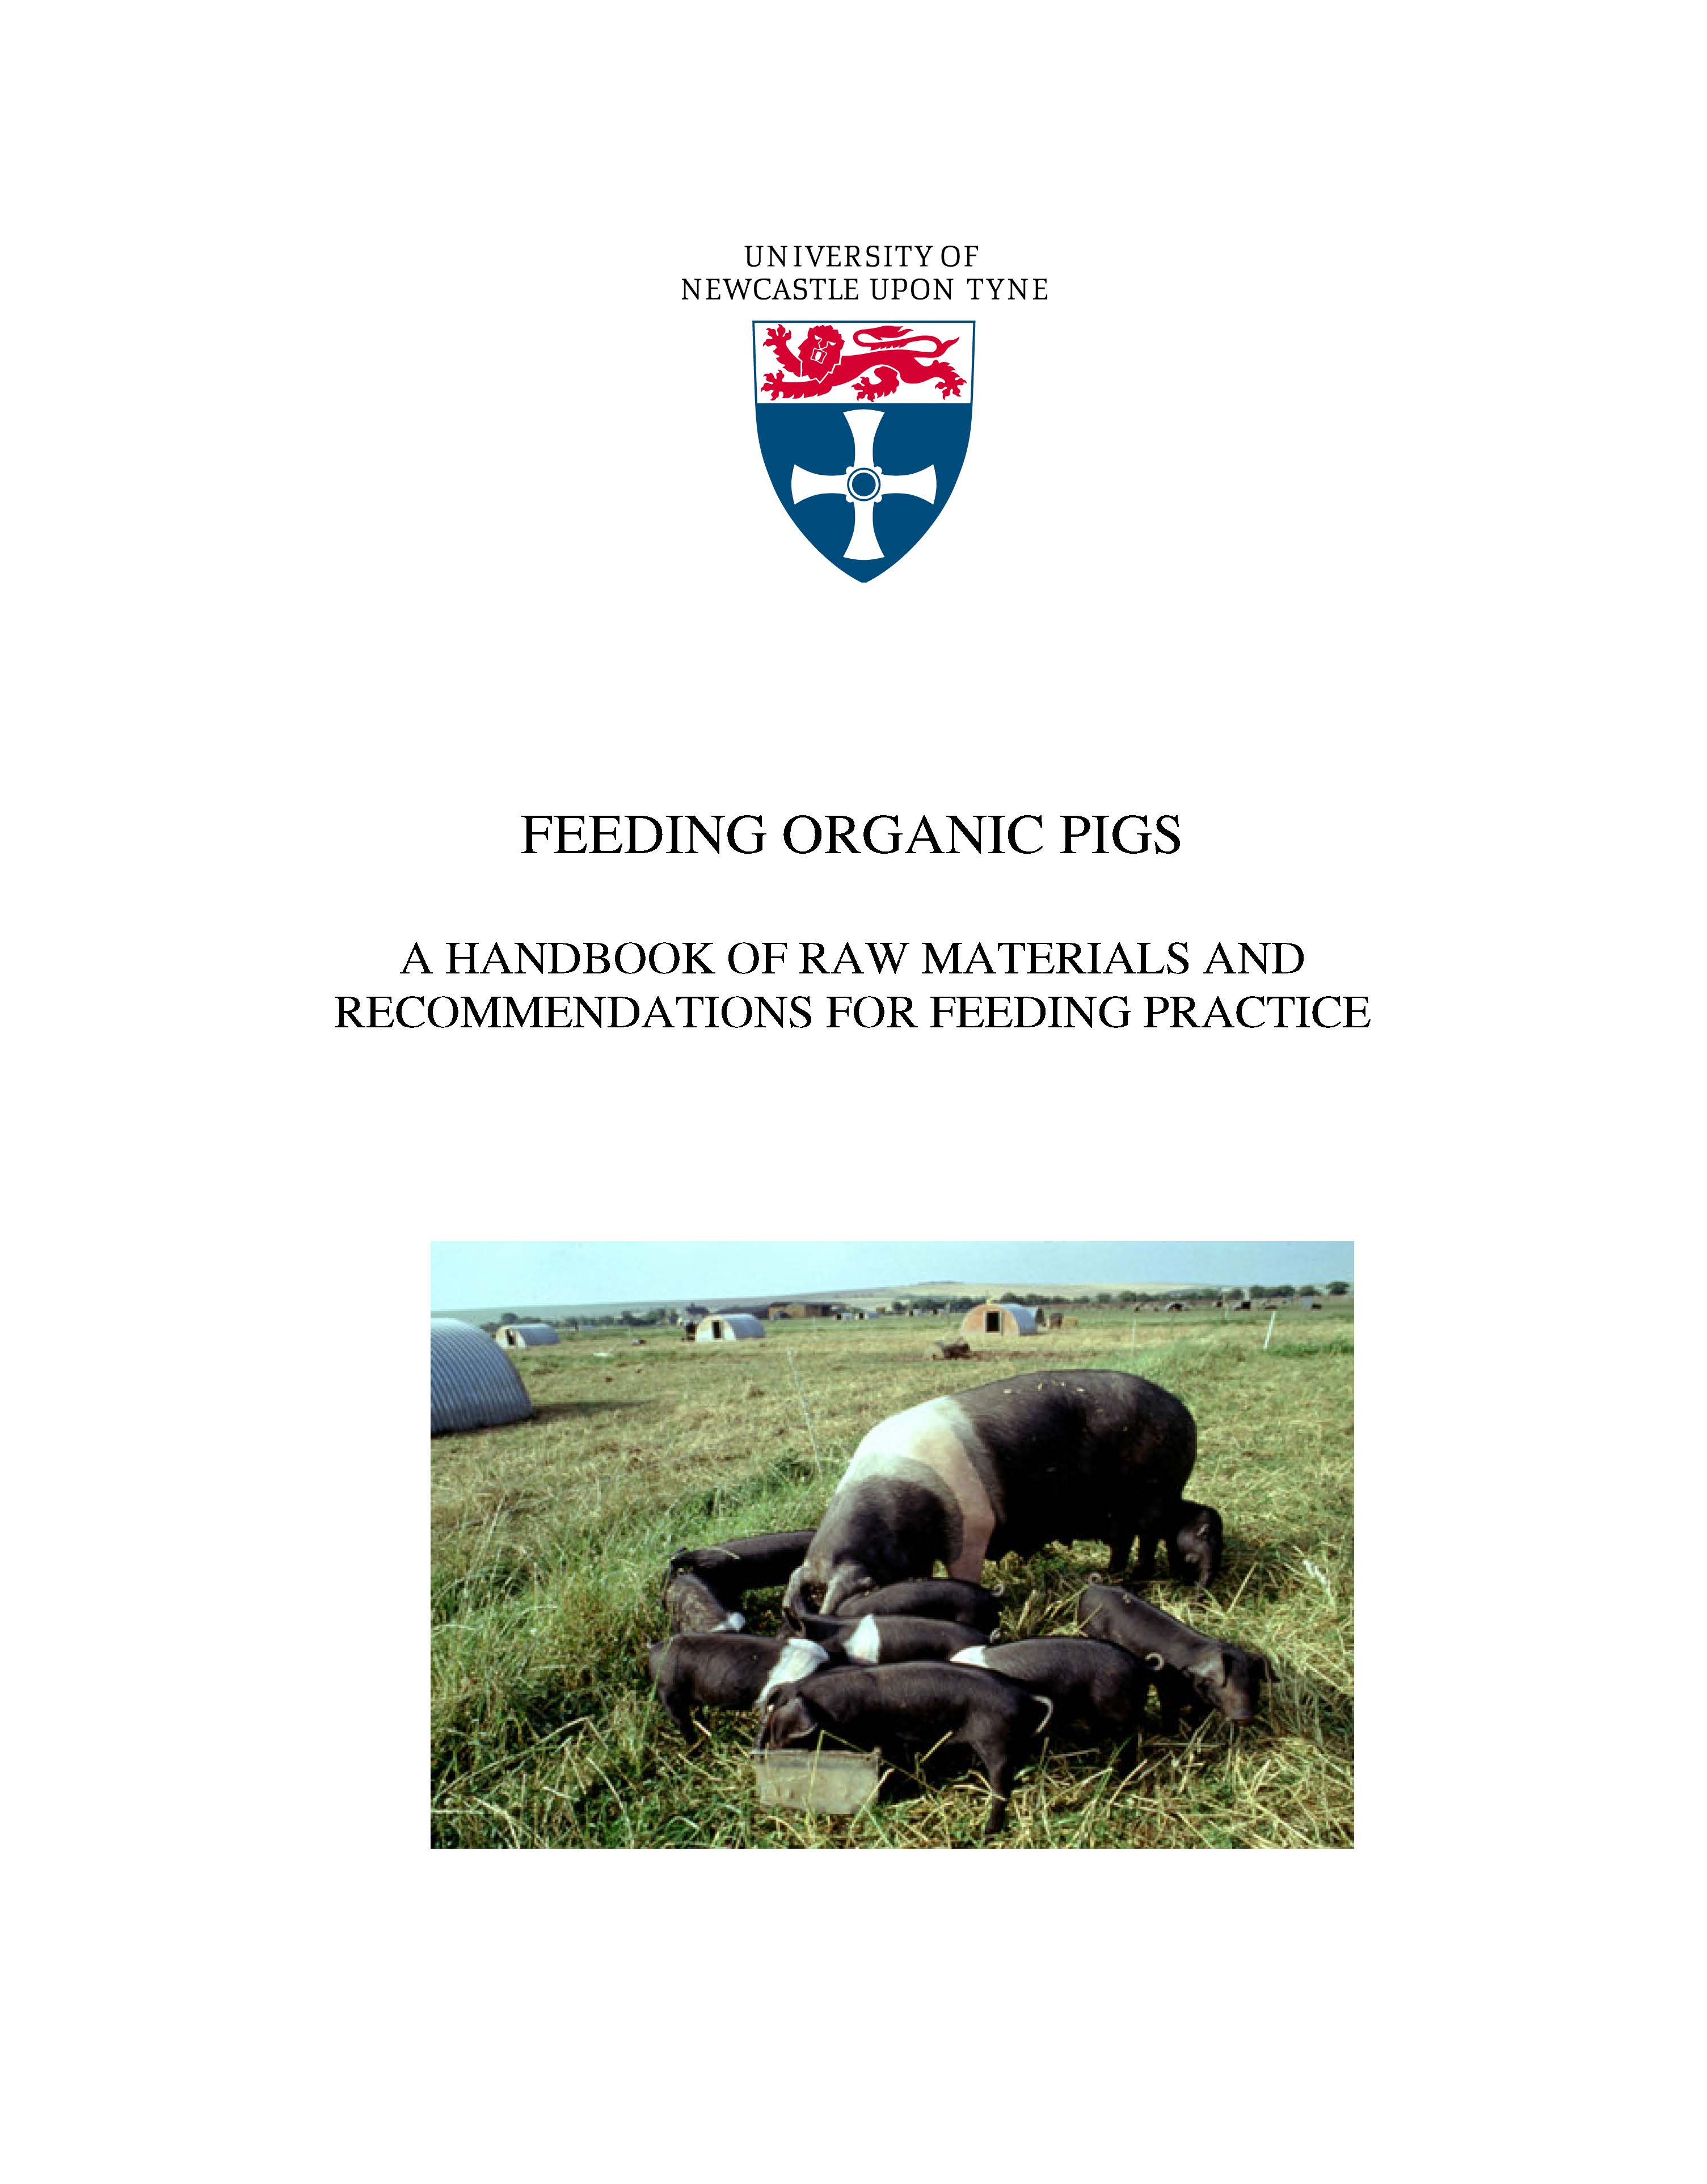 Feeding organic pigs: a handbook of raw materials and recommendations for feeding practice